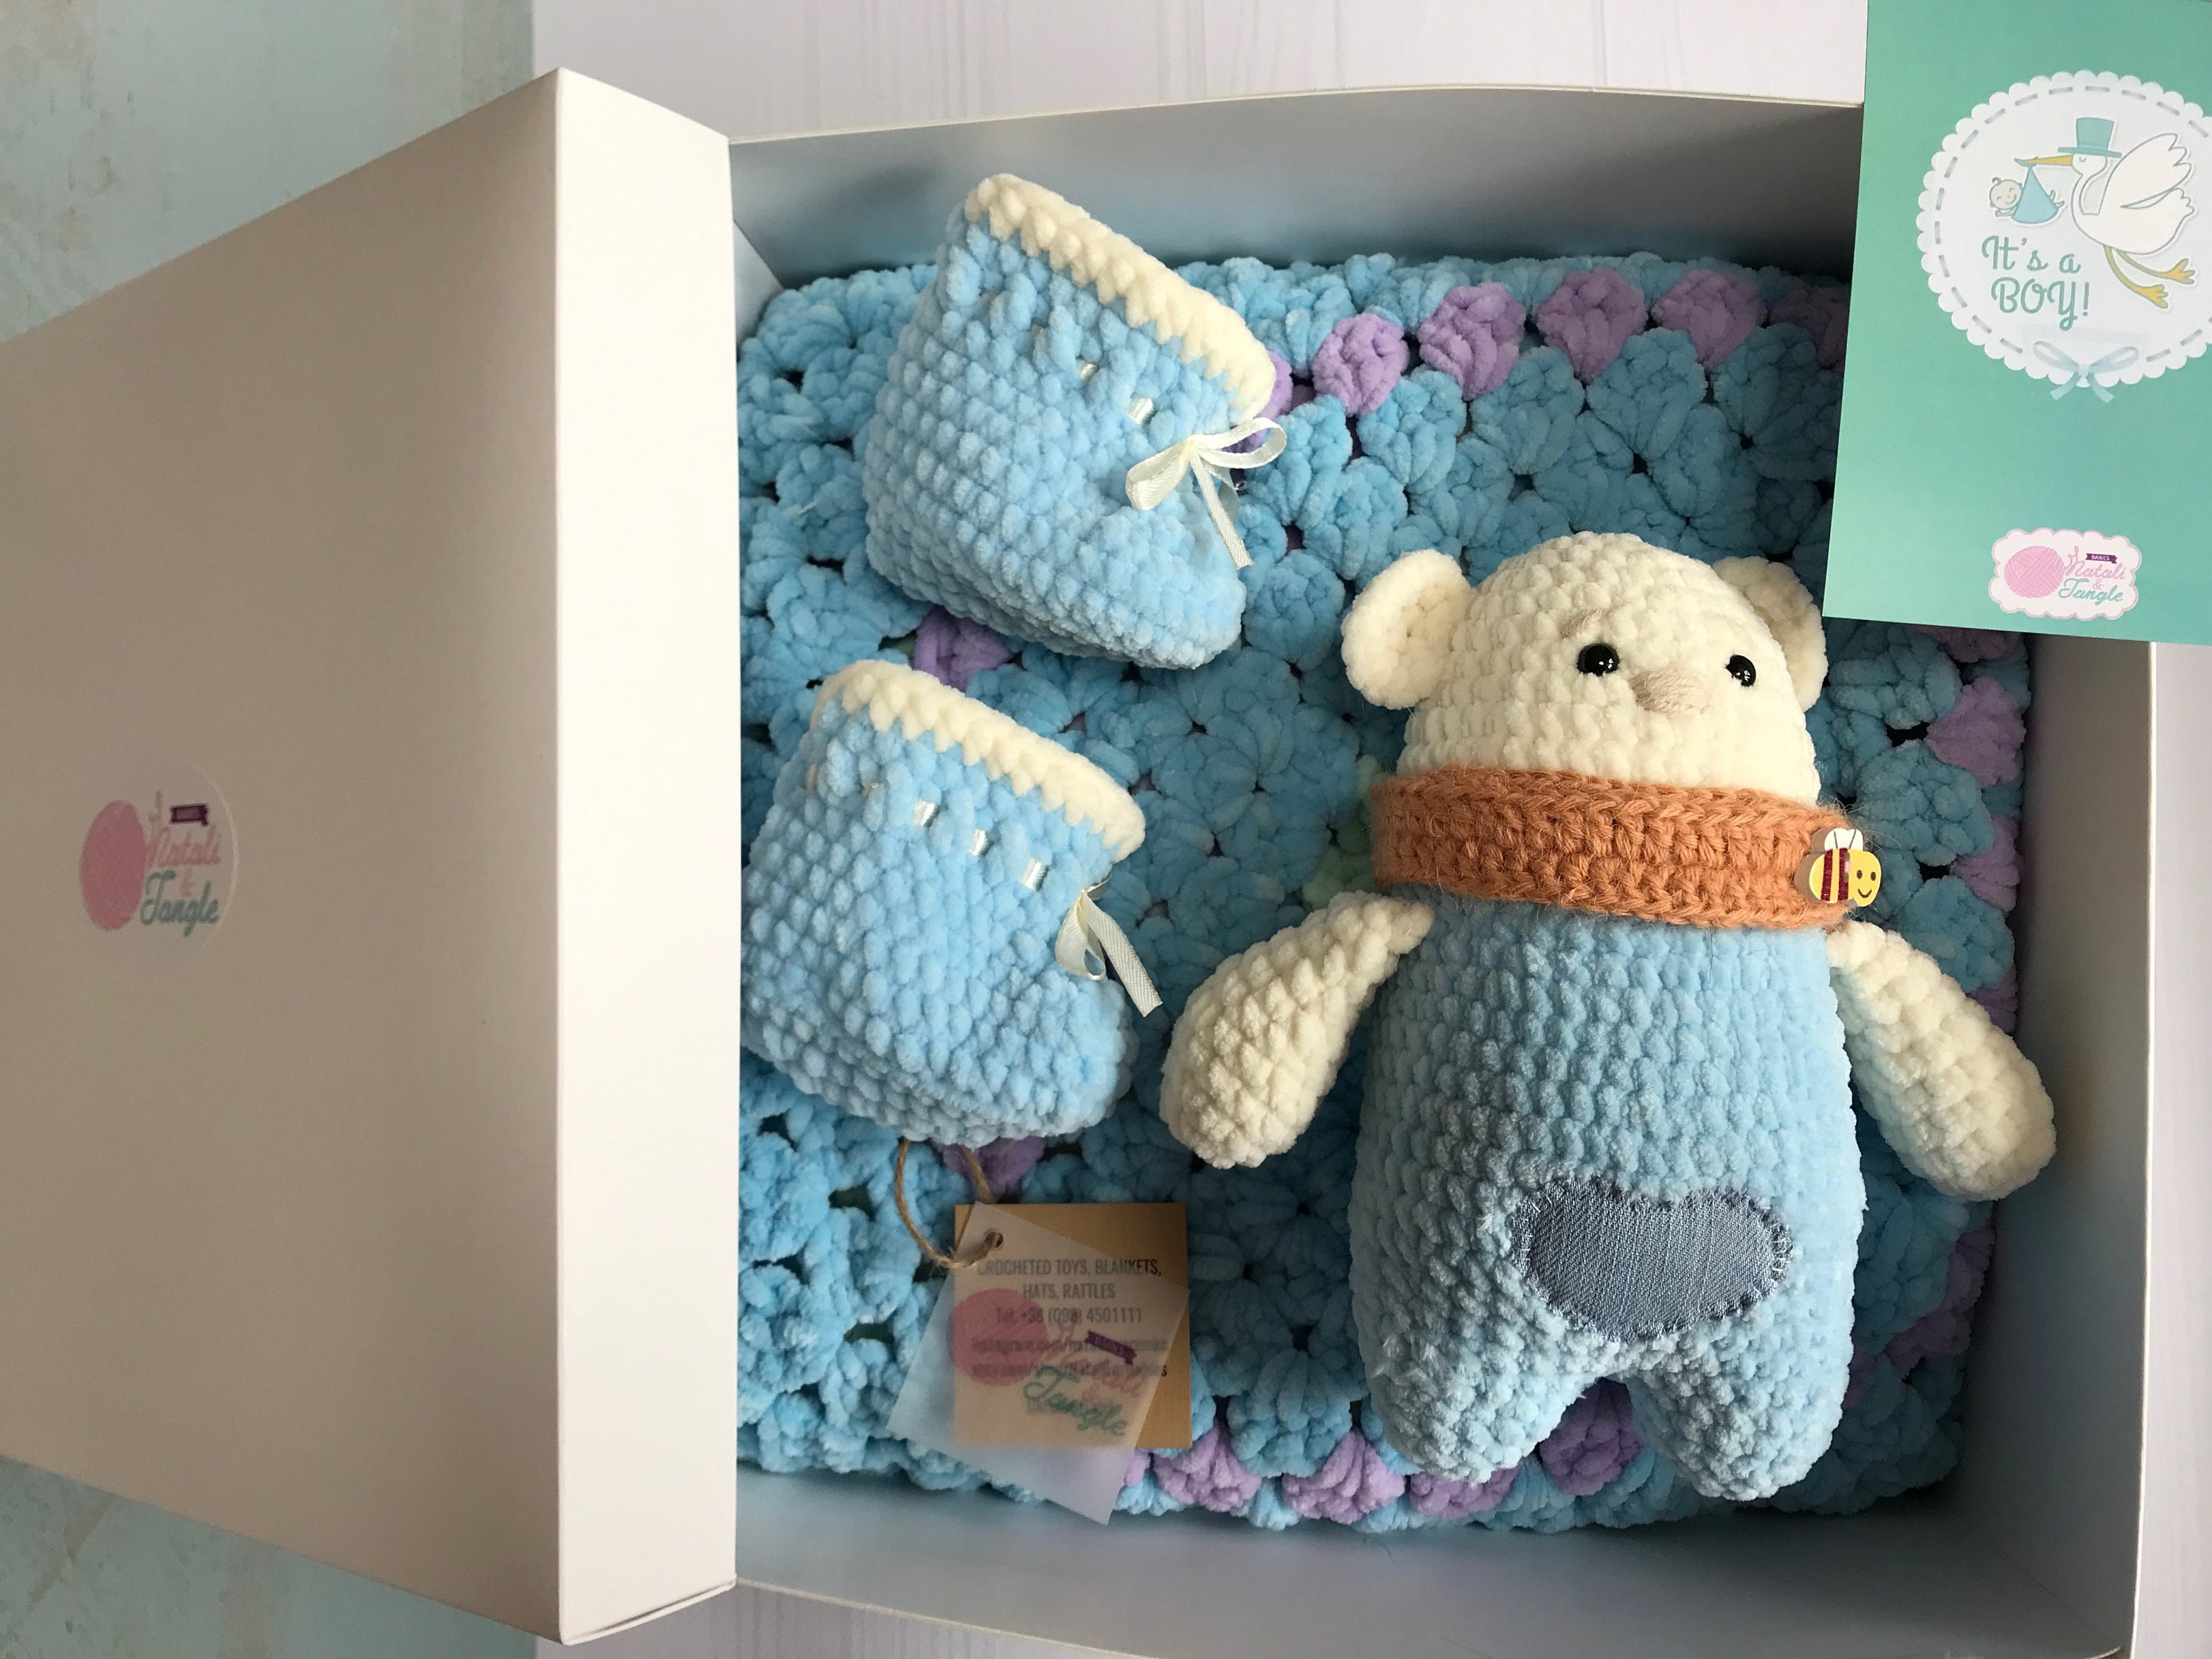 Crochet Baby Boys Set Plush Blanket Bear Newborn Boots Stuffed Knit Amigurumi Baby Shower Gift Infant Shoes Baptism Winter Pregnancy Gift